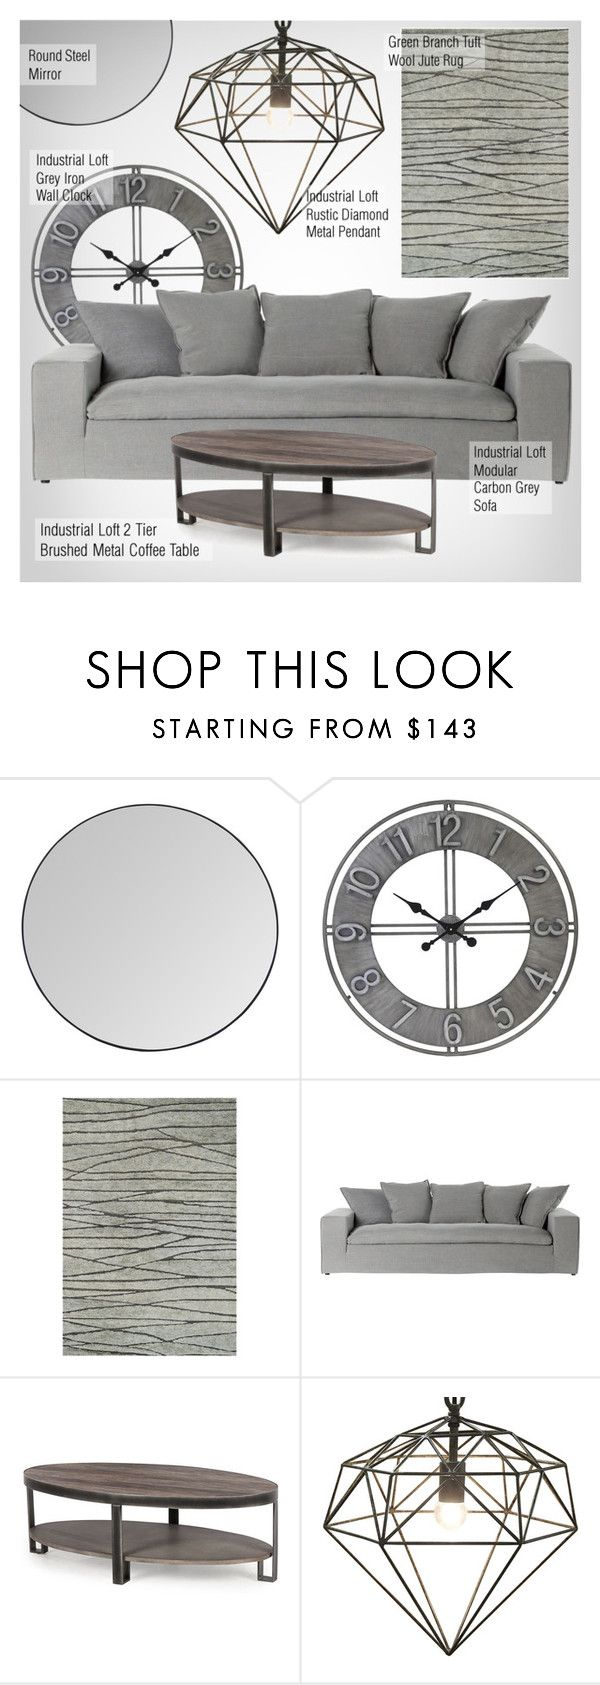 """""""Industrial Decor"""" by kathykuohome ❤ liked on Polyvore featuring interior, interiors, interior design, home, home decor, interior decorating, livingroom, Home, industrial and homedecor"""